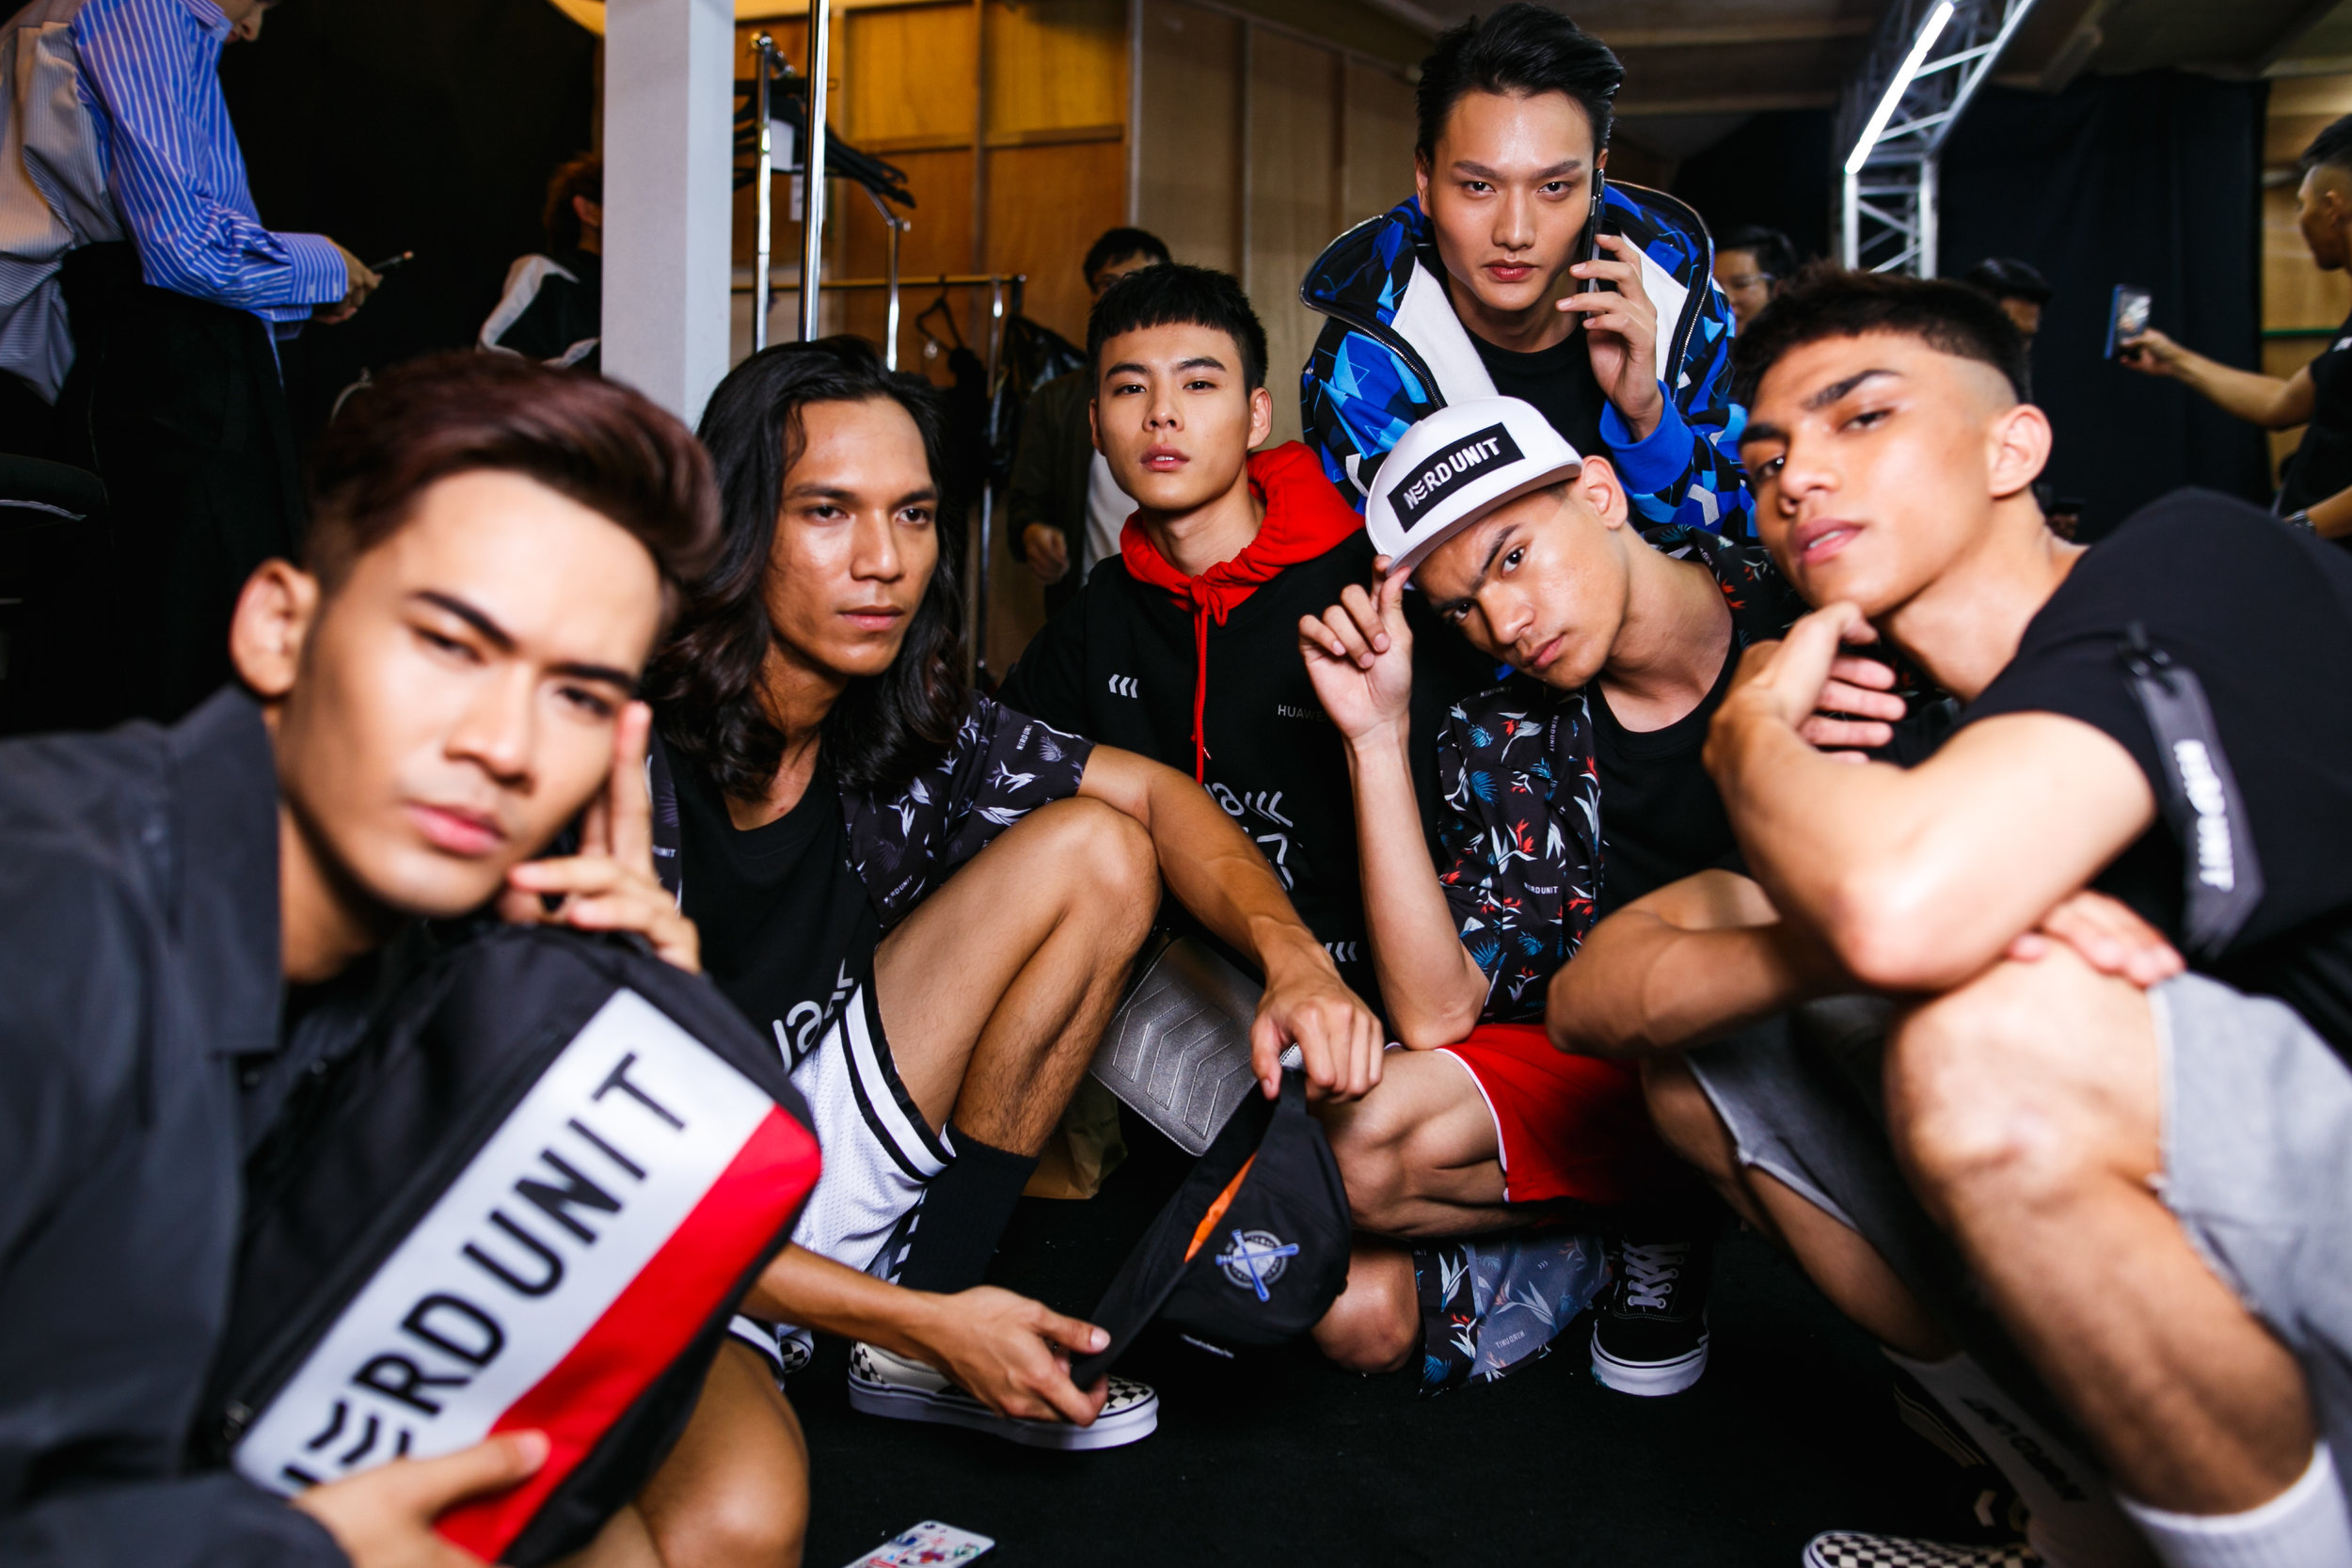 KLFW2018 - Day 2 - IMG_7728 - Photo by All Is Amazing.jpg